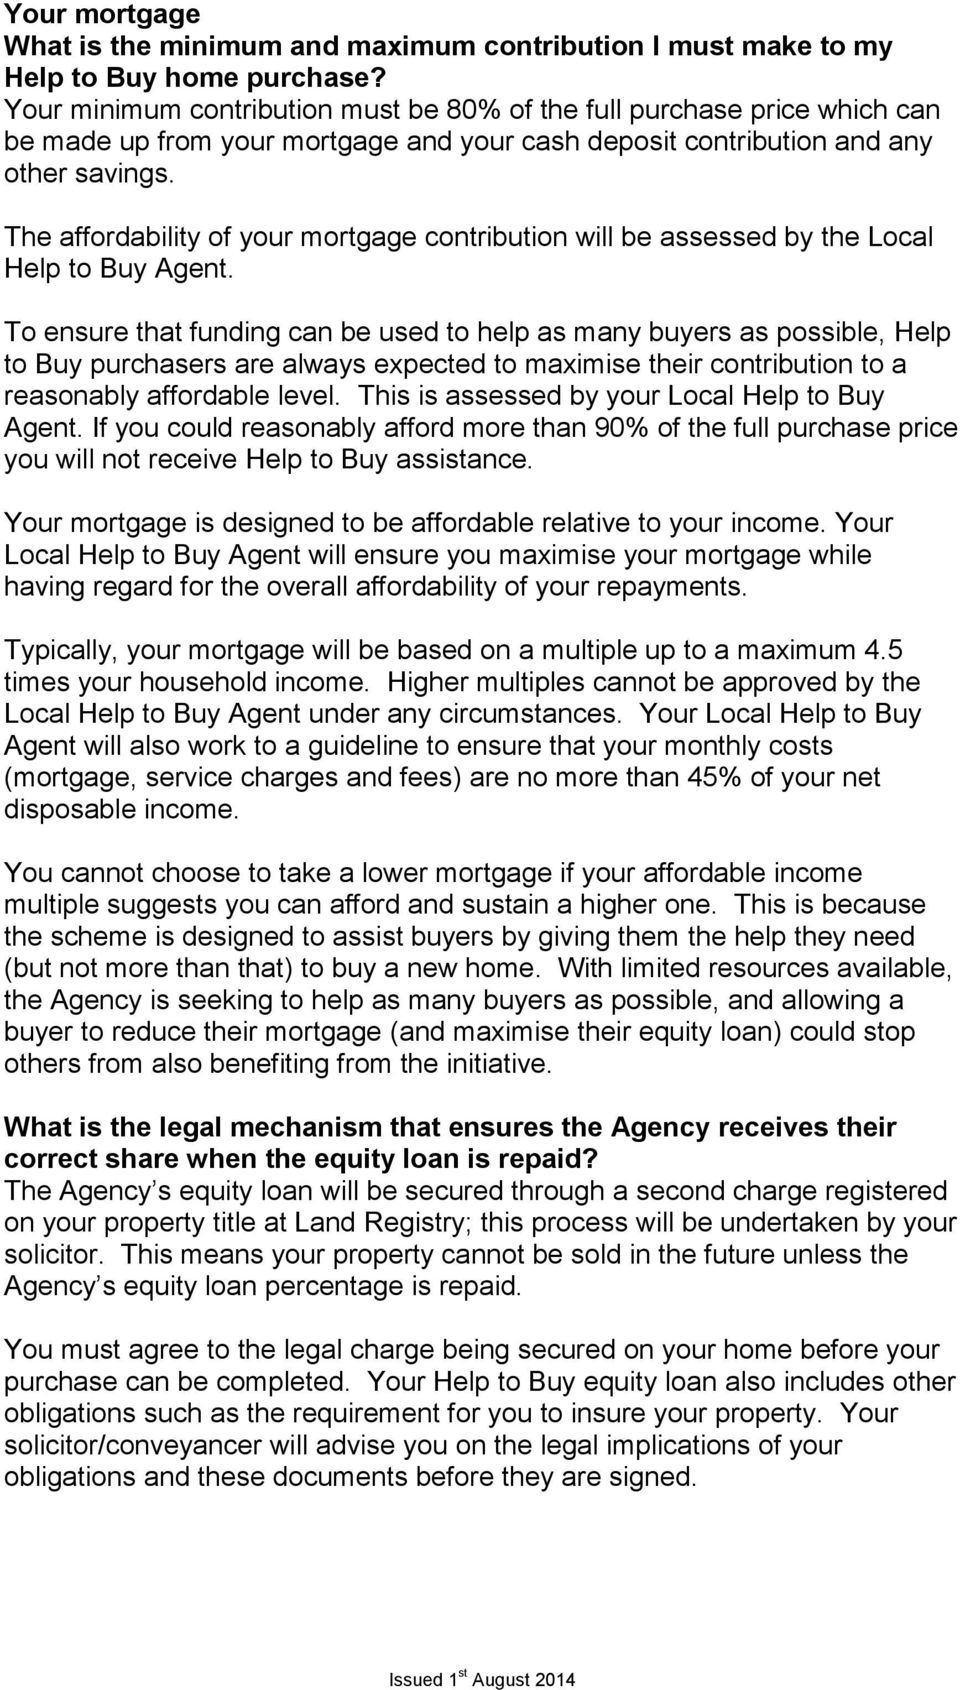 The affordability of your mortgage contribution will be assessed by the Local Help to Buy Agent.